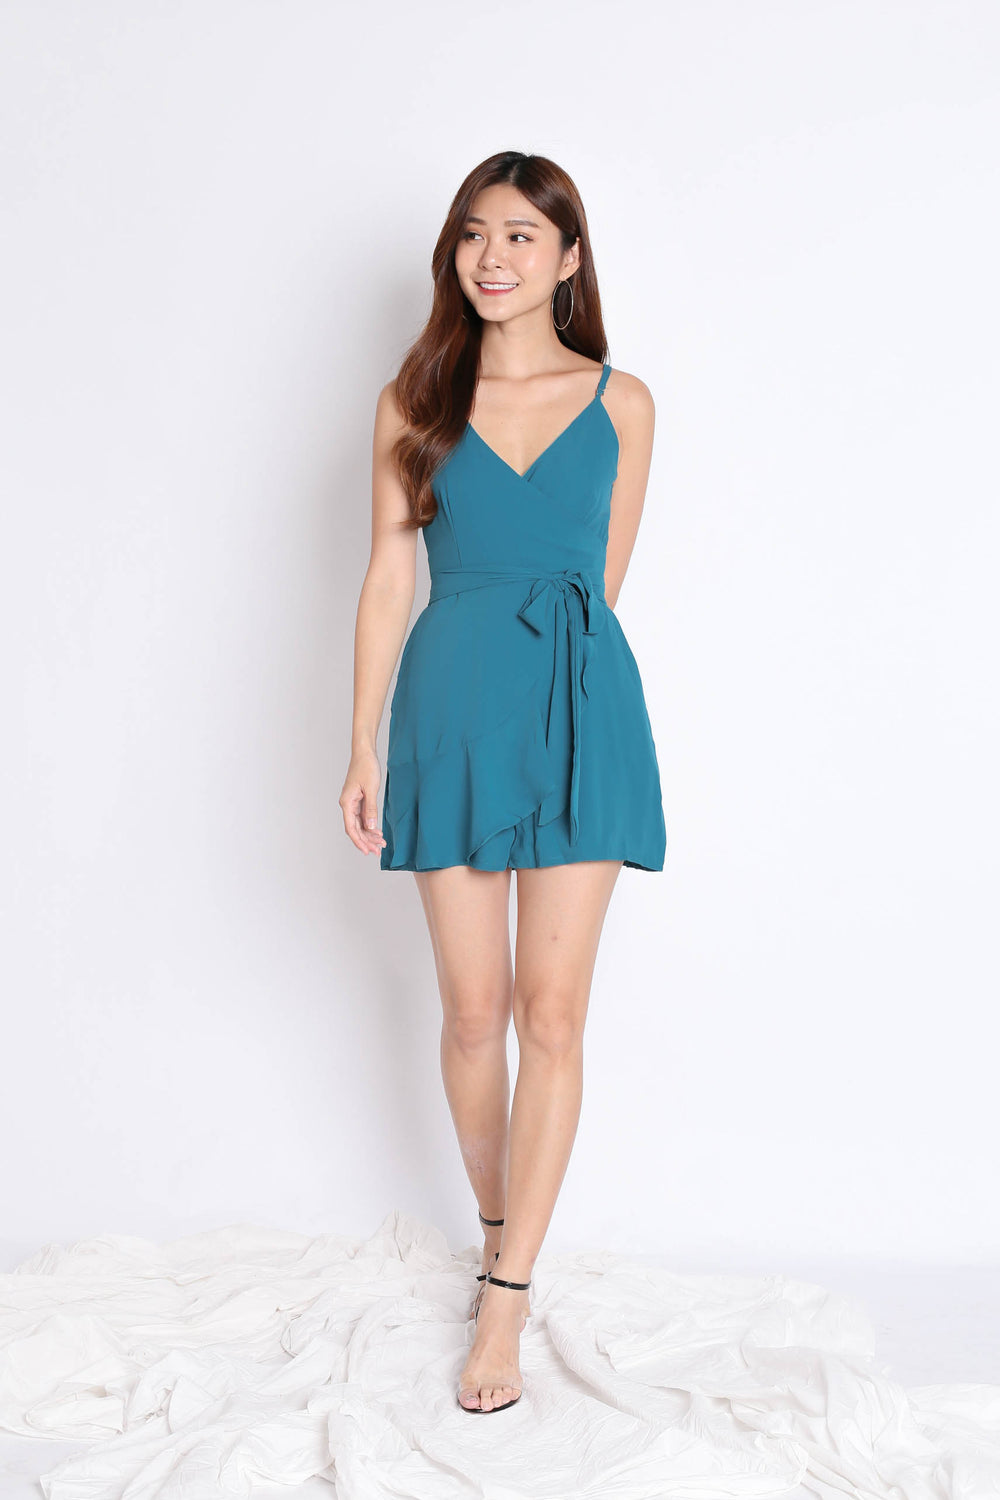 *TPZ* (PREMIUM) MYLA ROMPER DRESS IN TEAL